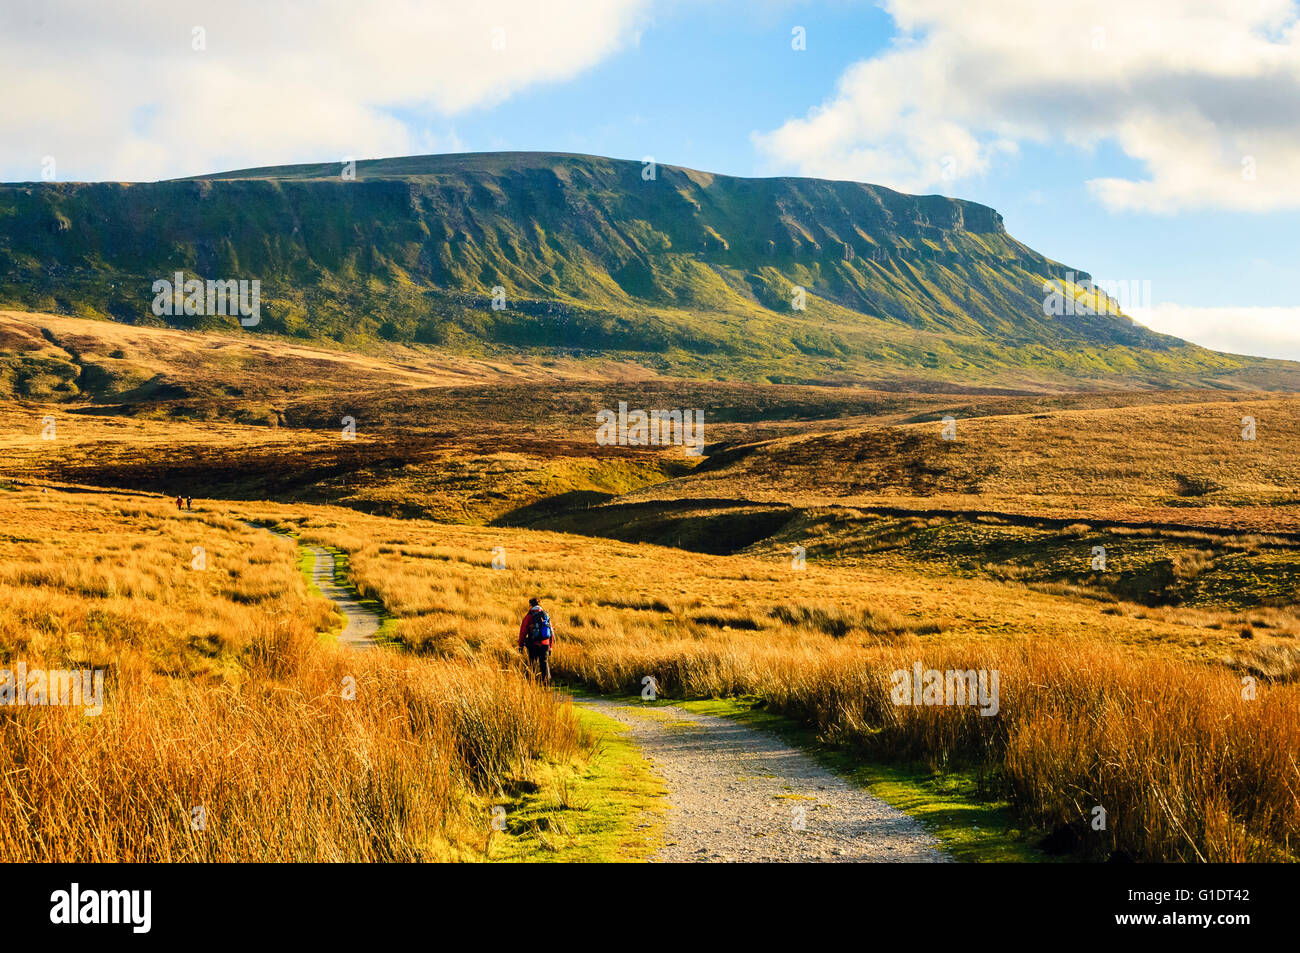 Walker on the Pennine Way below Pen-y-Ghent in the Yorkshire Dales National Park England - Stock Image